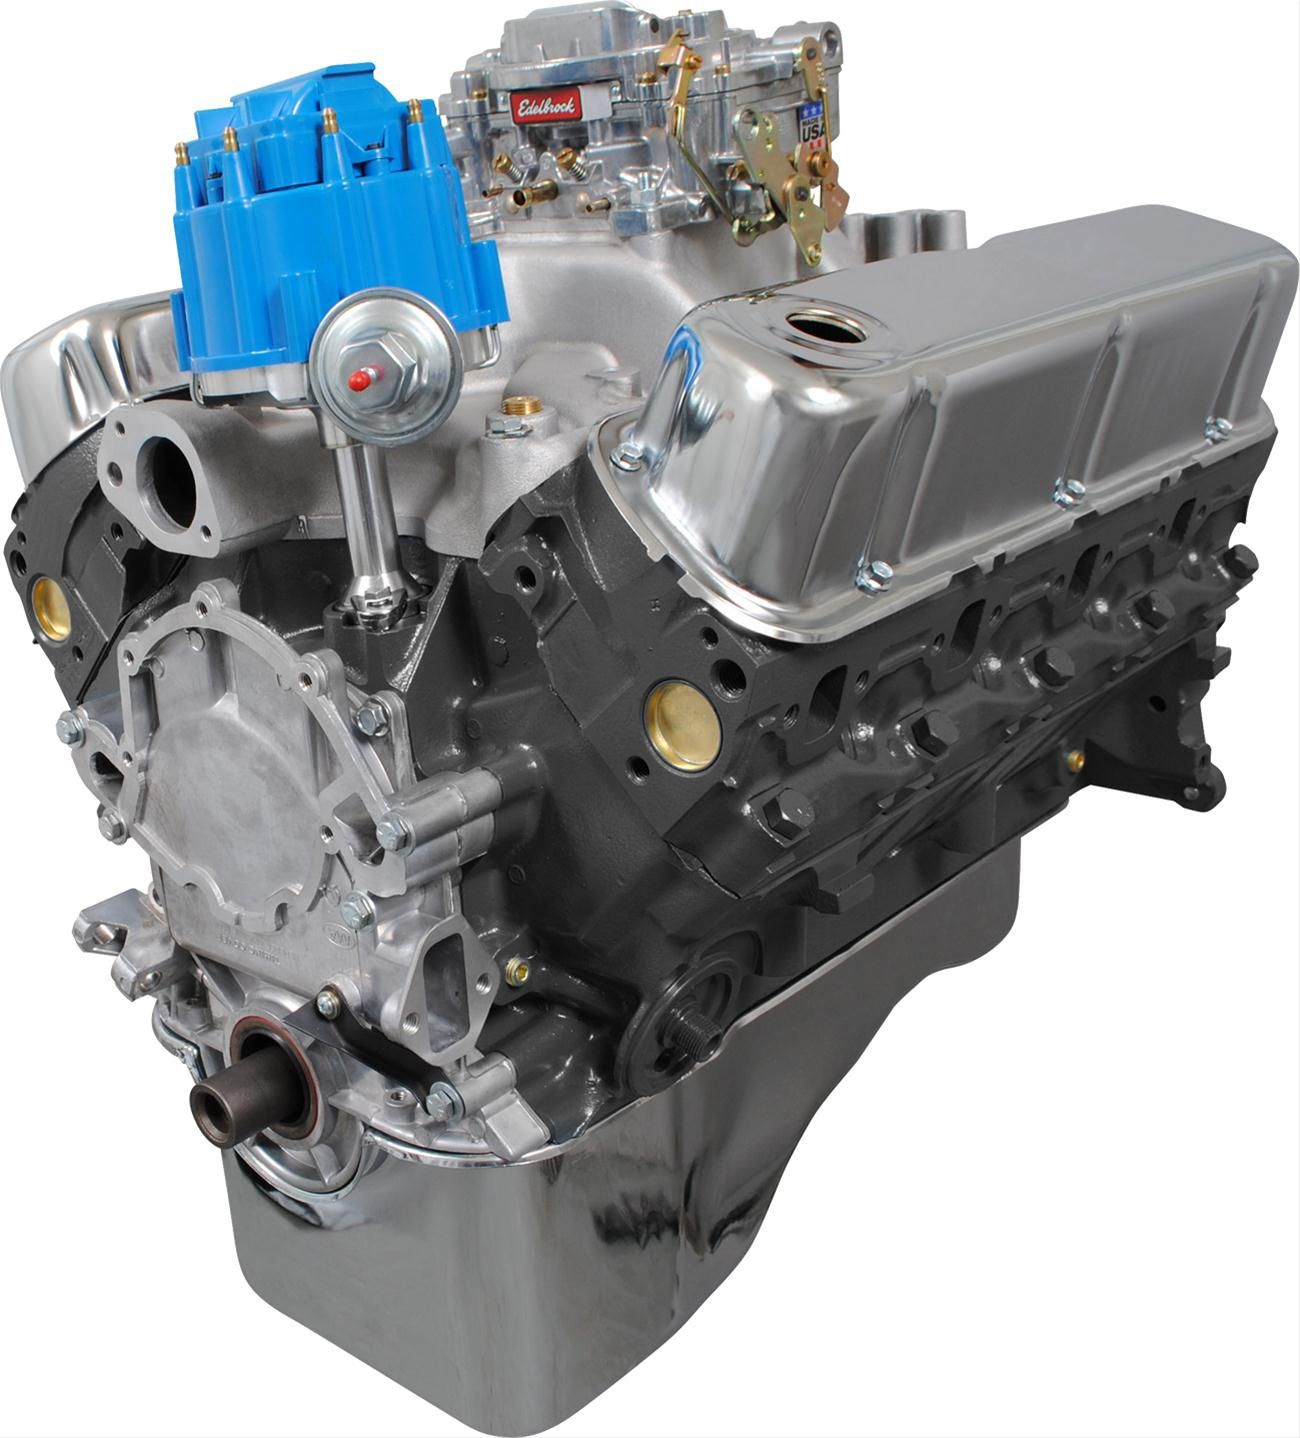 Find blueprint engines ford 408 cid 425hp stroker base dressed find blueprint engines ford 408 cid 425hp stroker base dressed crate engines with aluminum heads bpf4084ctc and get free standard shipping on orders over malvernweather Choice Image